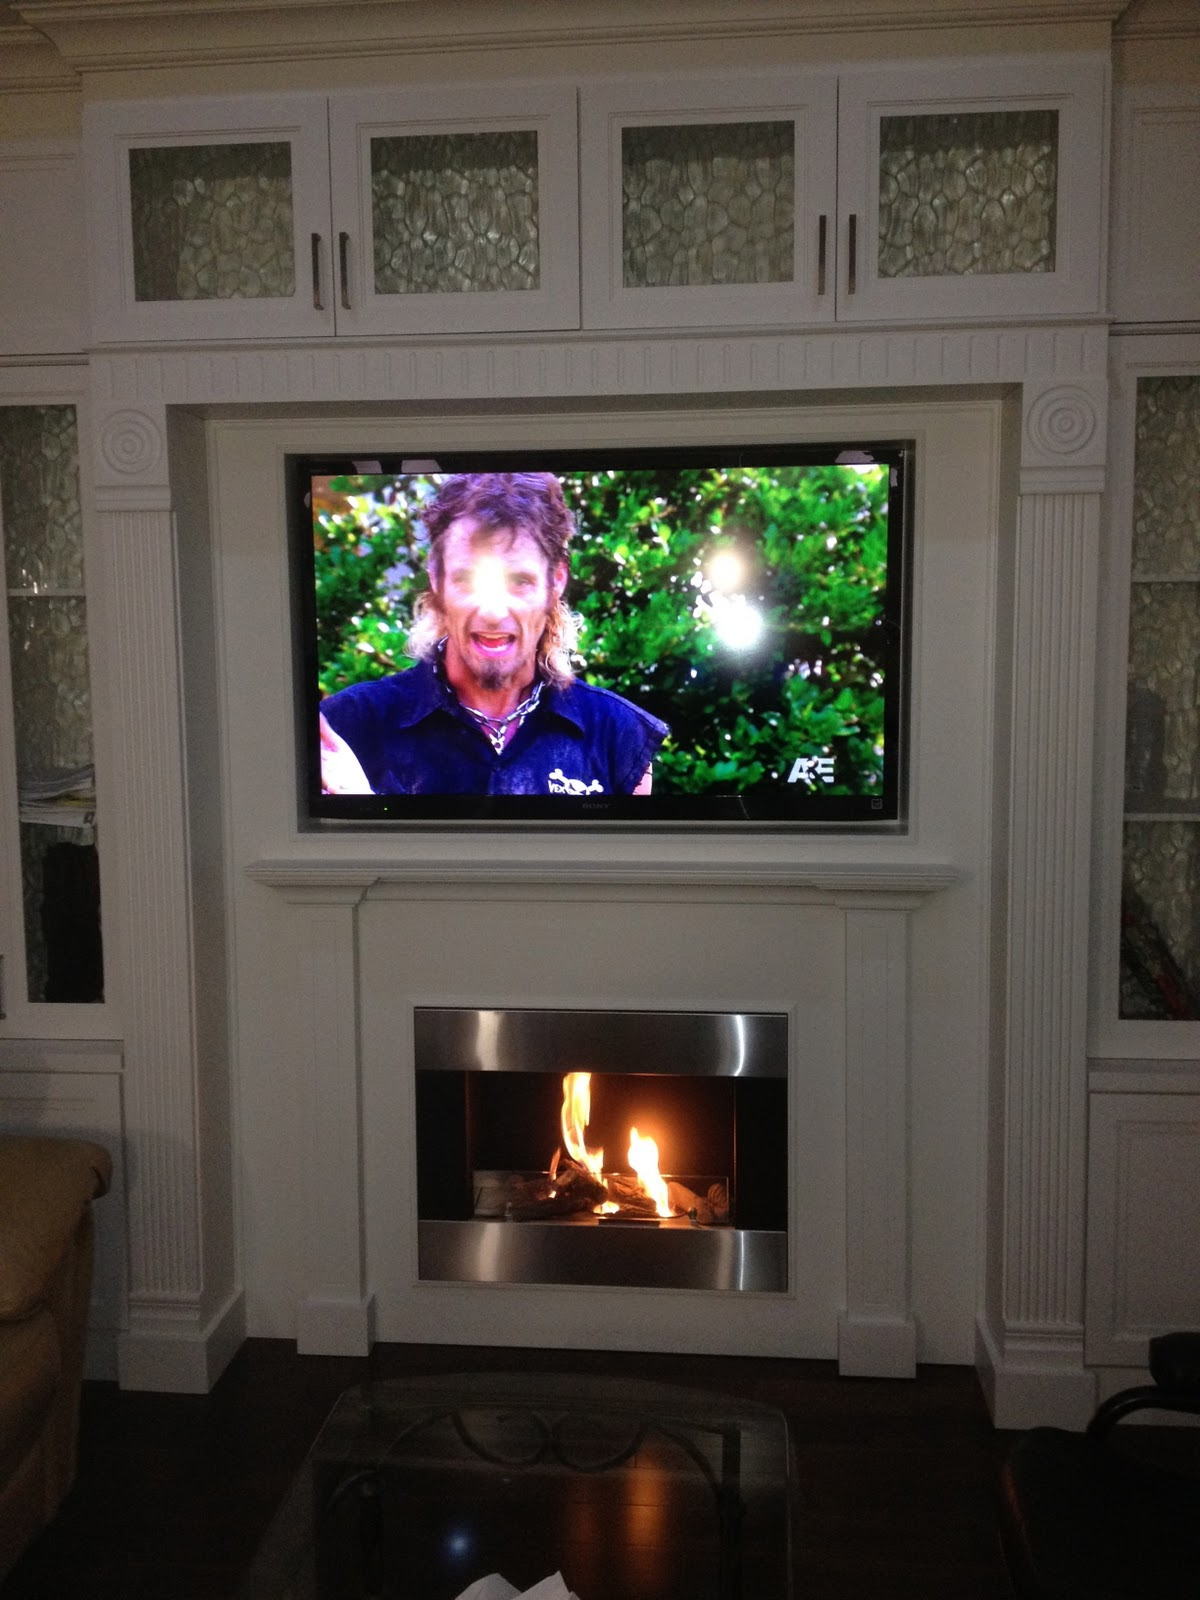 The Reno Coach Passive House Project In Toronto Our New Wall Unit With Ethanol Fireplace